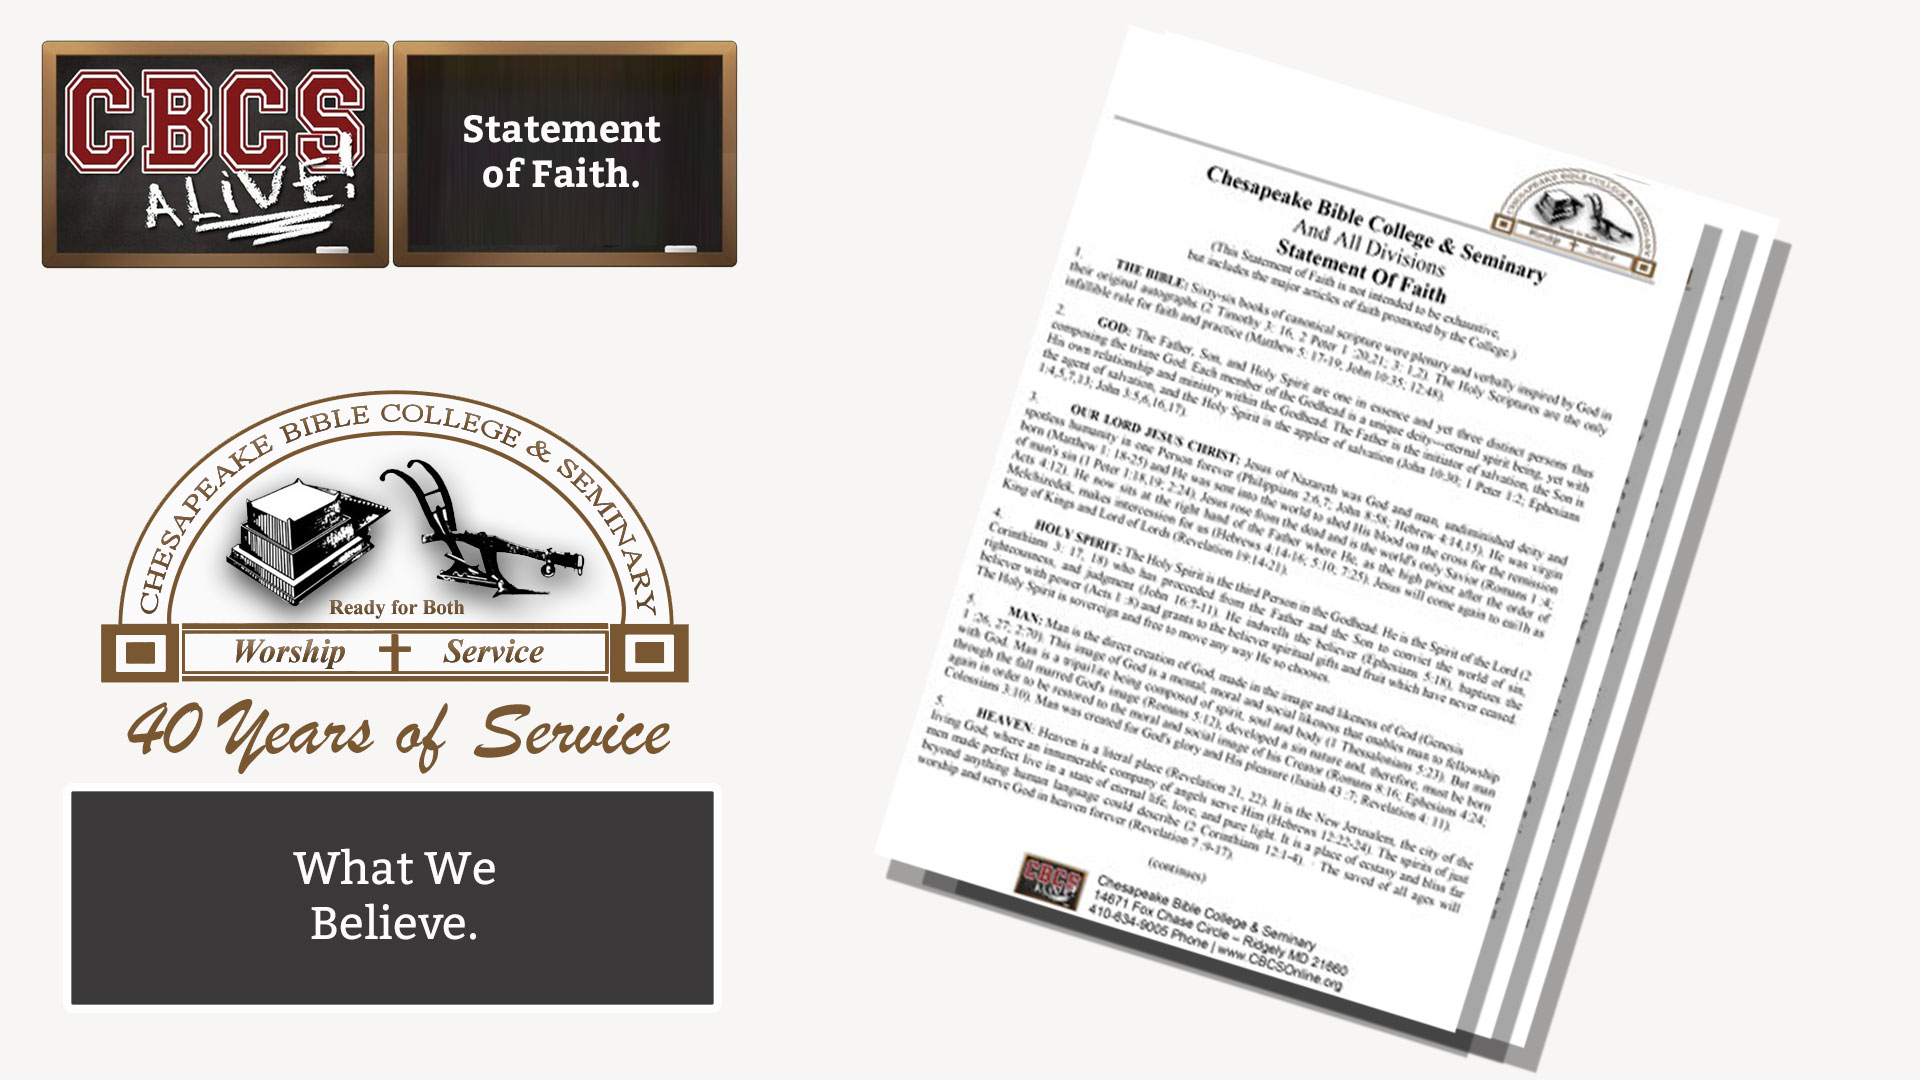 Chesapeake Bible College & Seminary - Statement of Faith